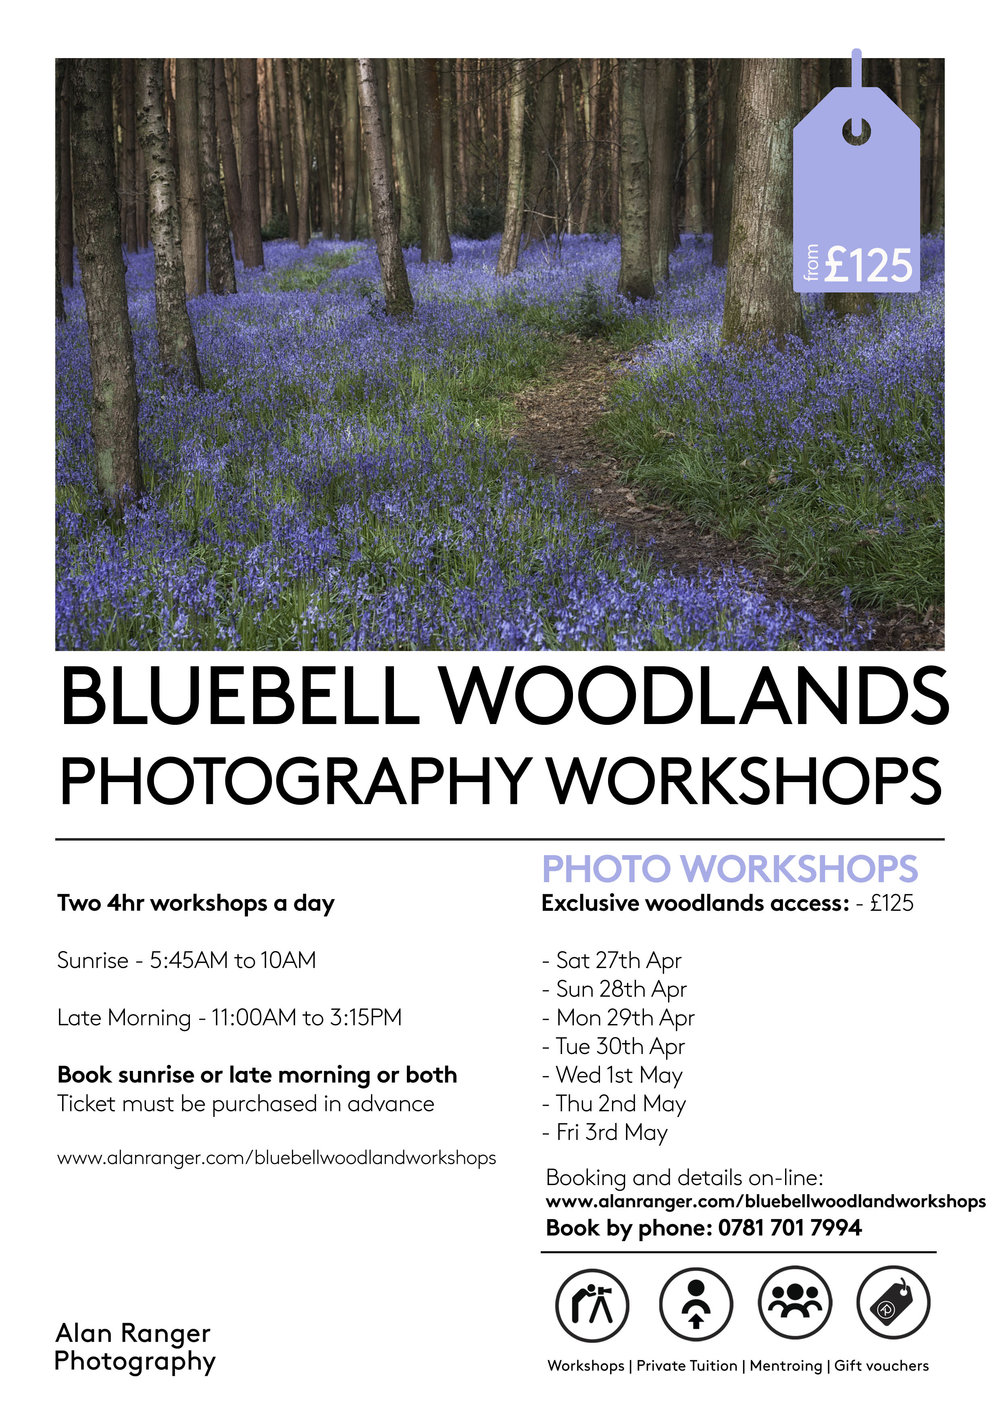 Bluebell Photography Workshops